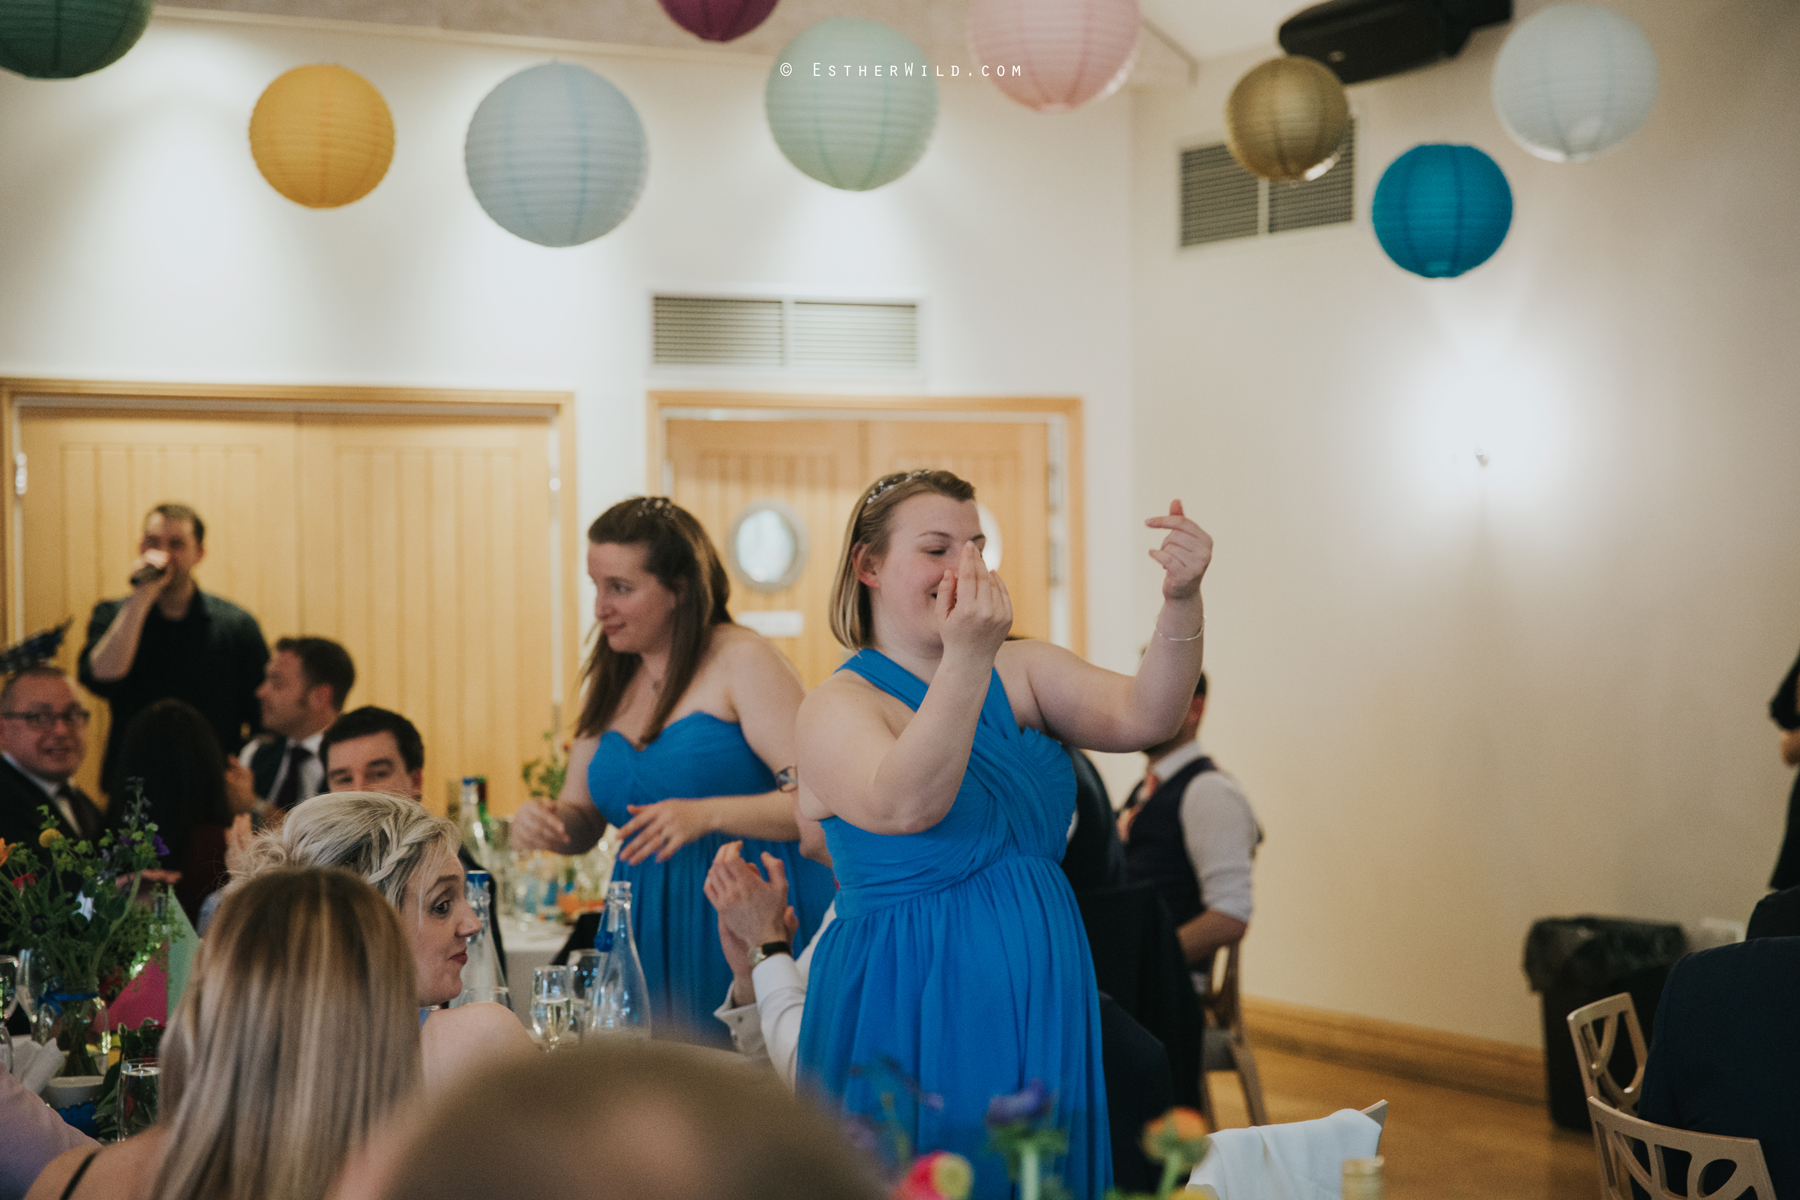 The_BoatHouse_Wedding_Venue_Ormesby_Norfolk_Broads_Boat_Wedding_Photography_Esther_Wild_Photographer_IMG_2369.jpg